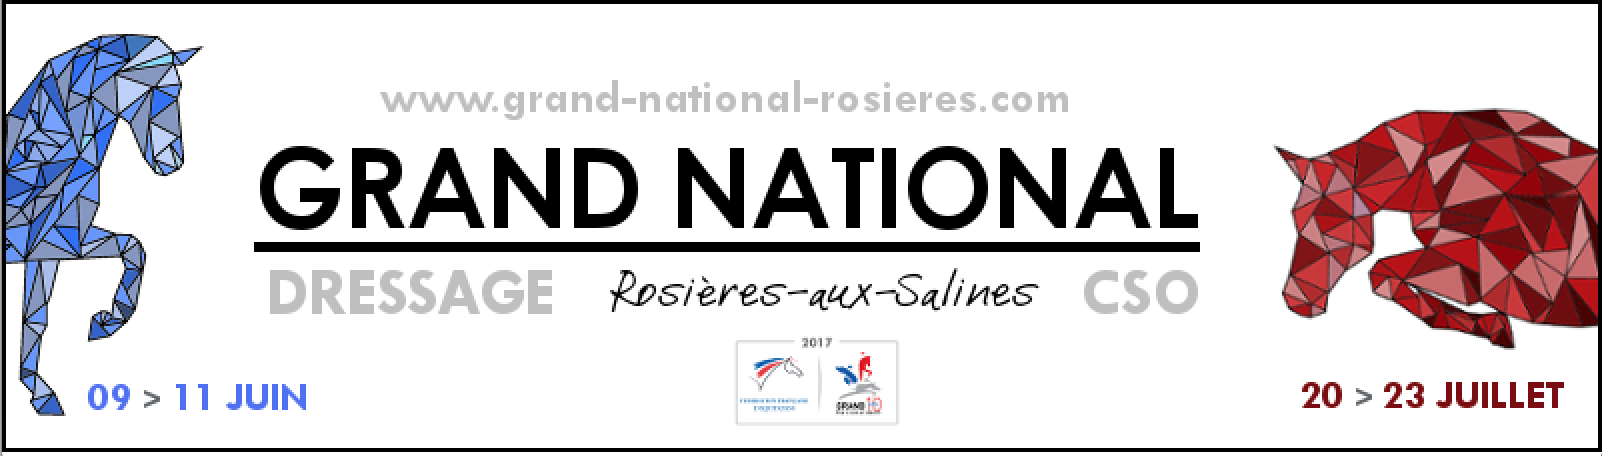 Grand National de Dressage de Rosières-aux-Salines